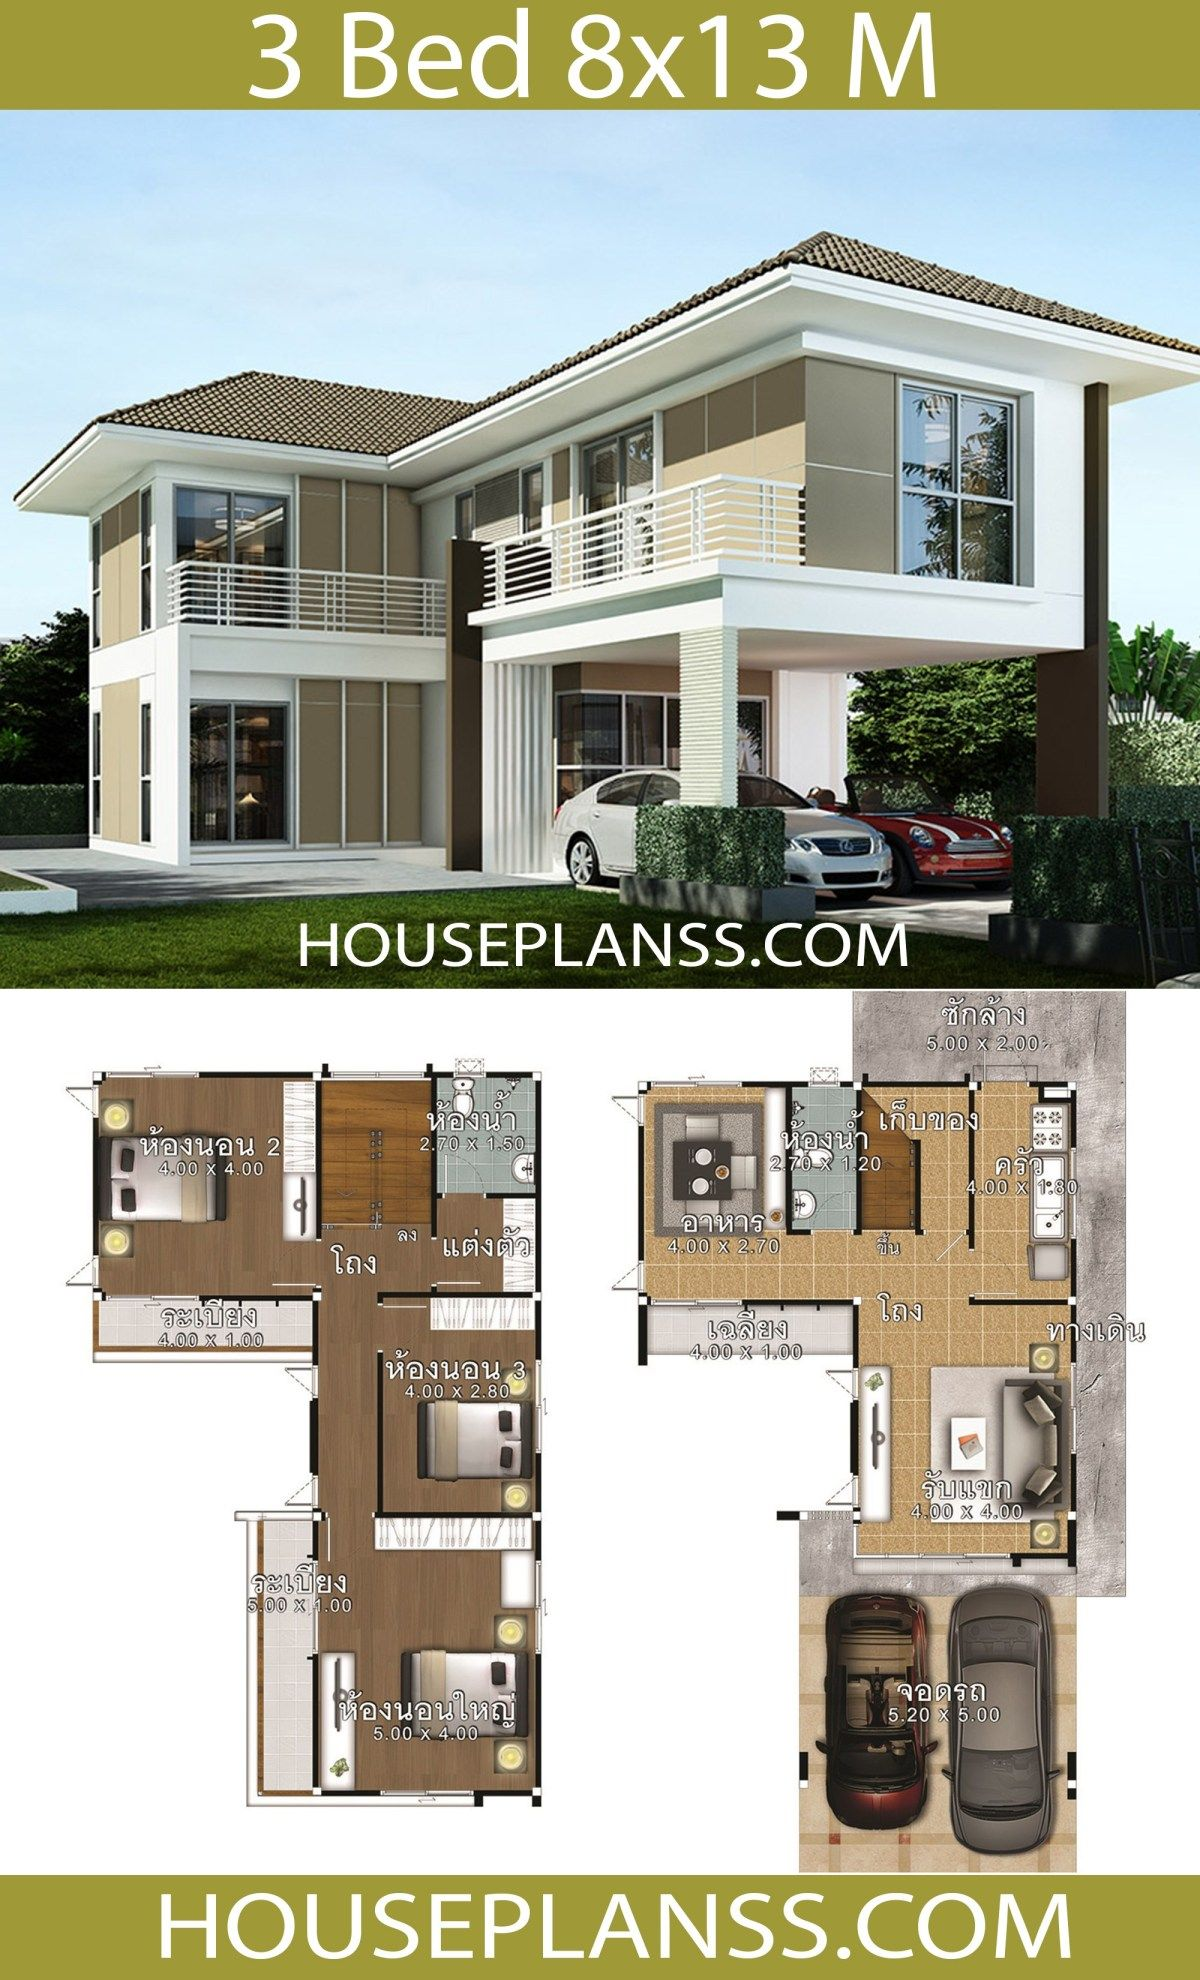 House Plans Idea 8x13 With 3 Bedrooms House Plans Sam Modern House Design House Plans Model House Plan